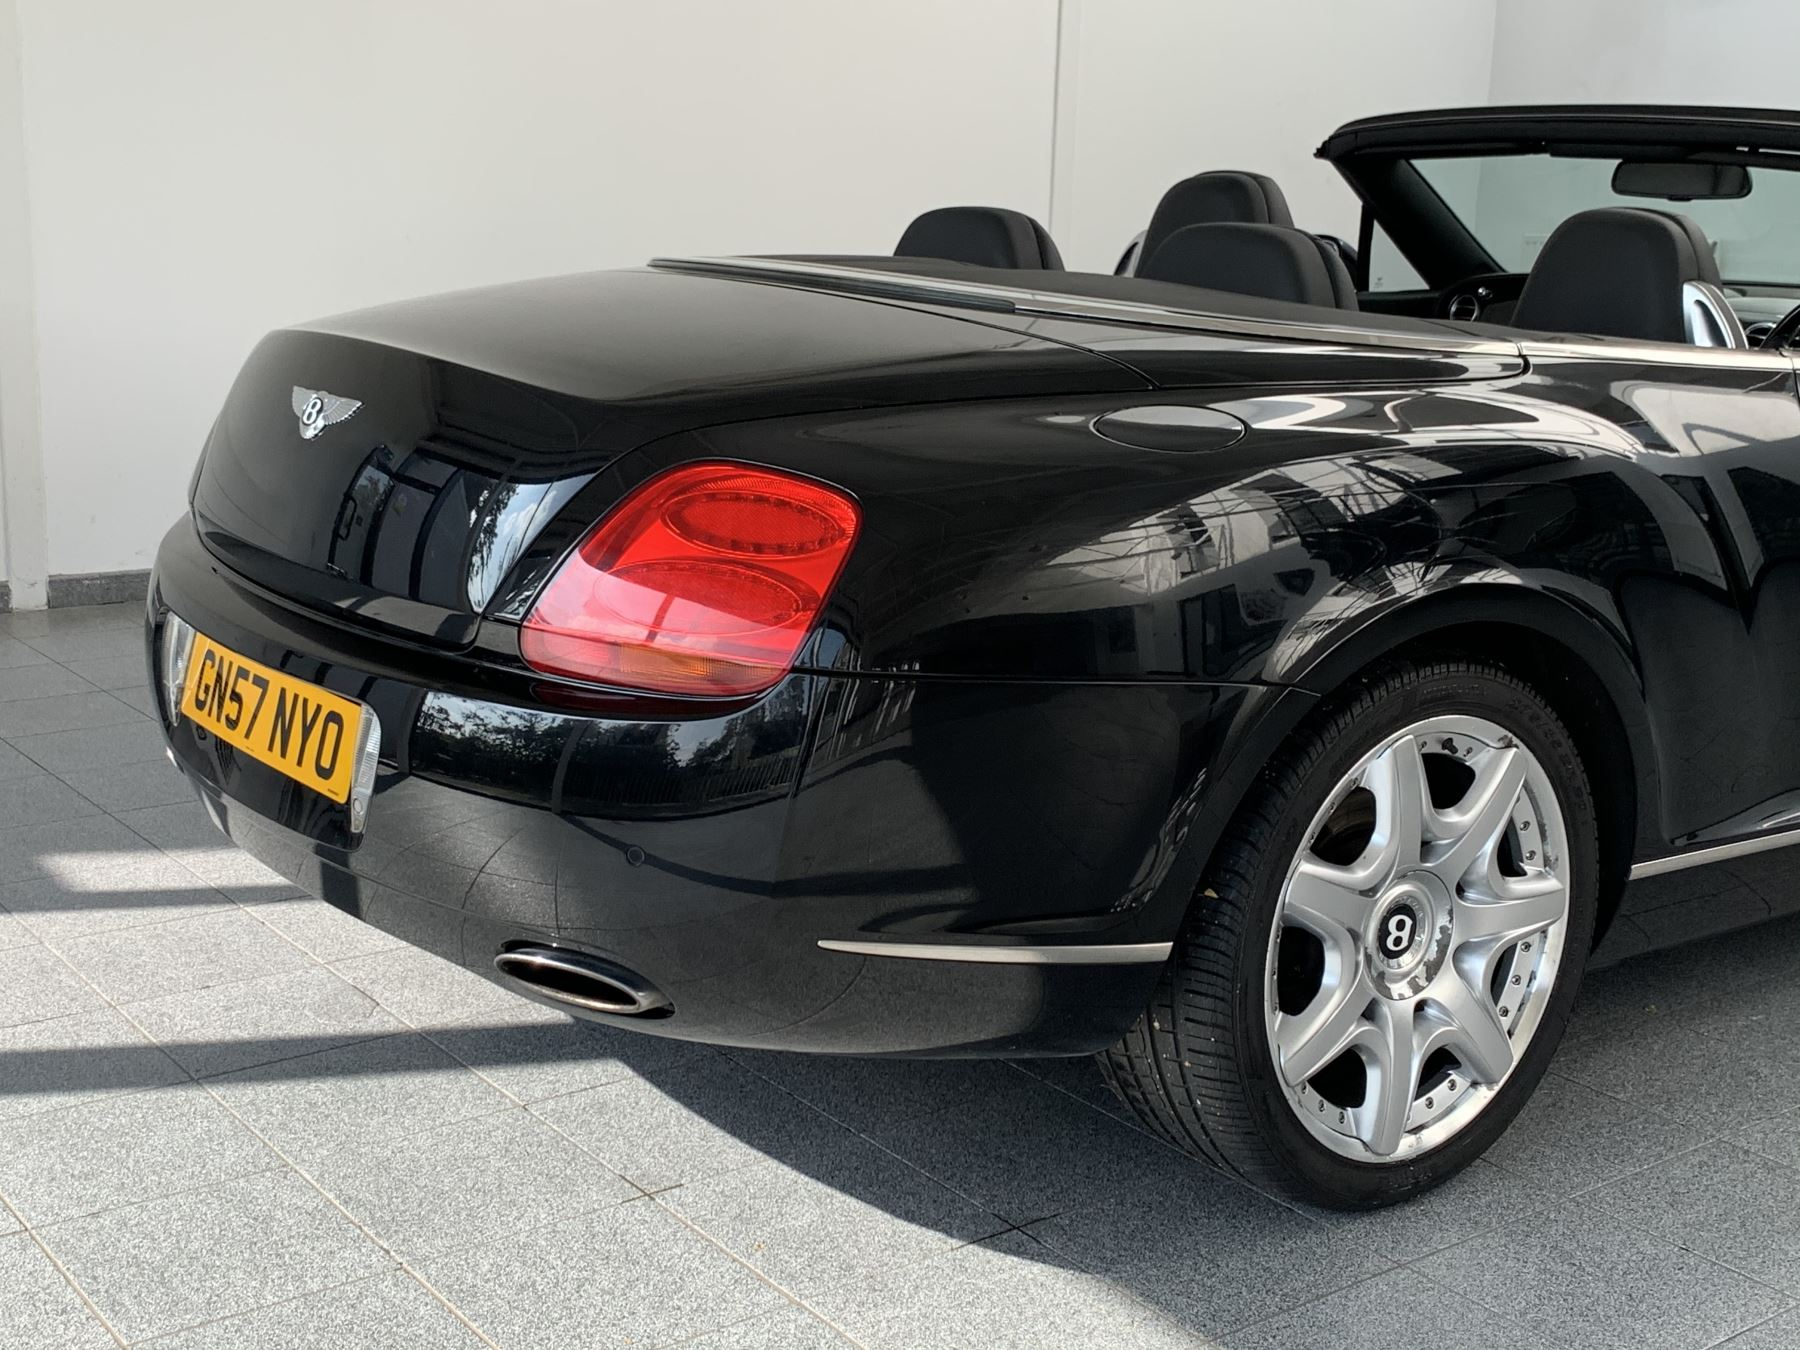 Bentley Continental GTC 6.0 W12 Mulliner 2dr image 8